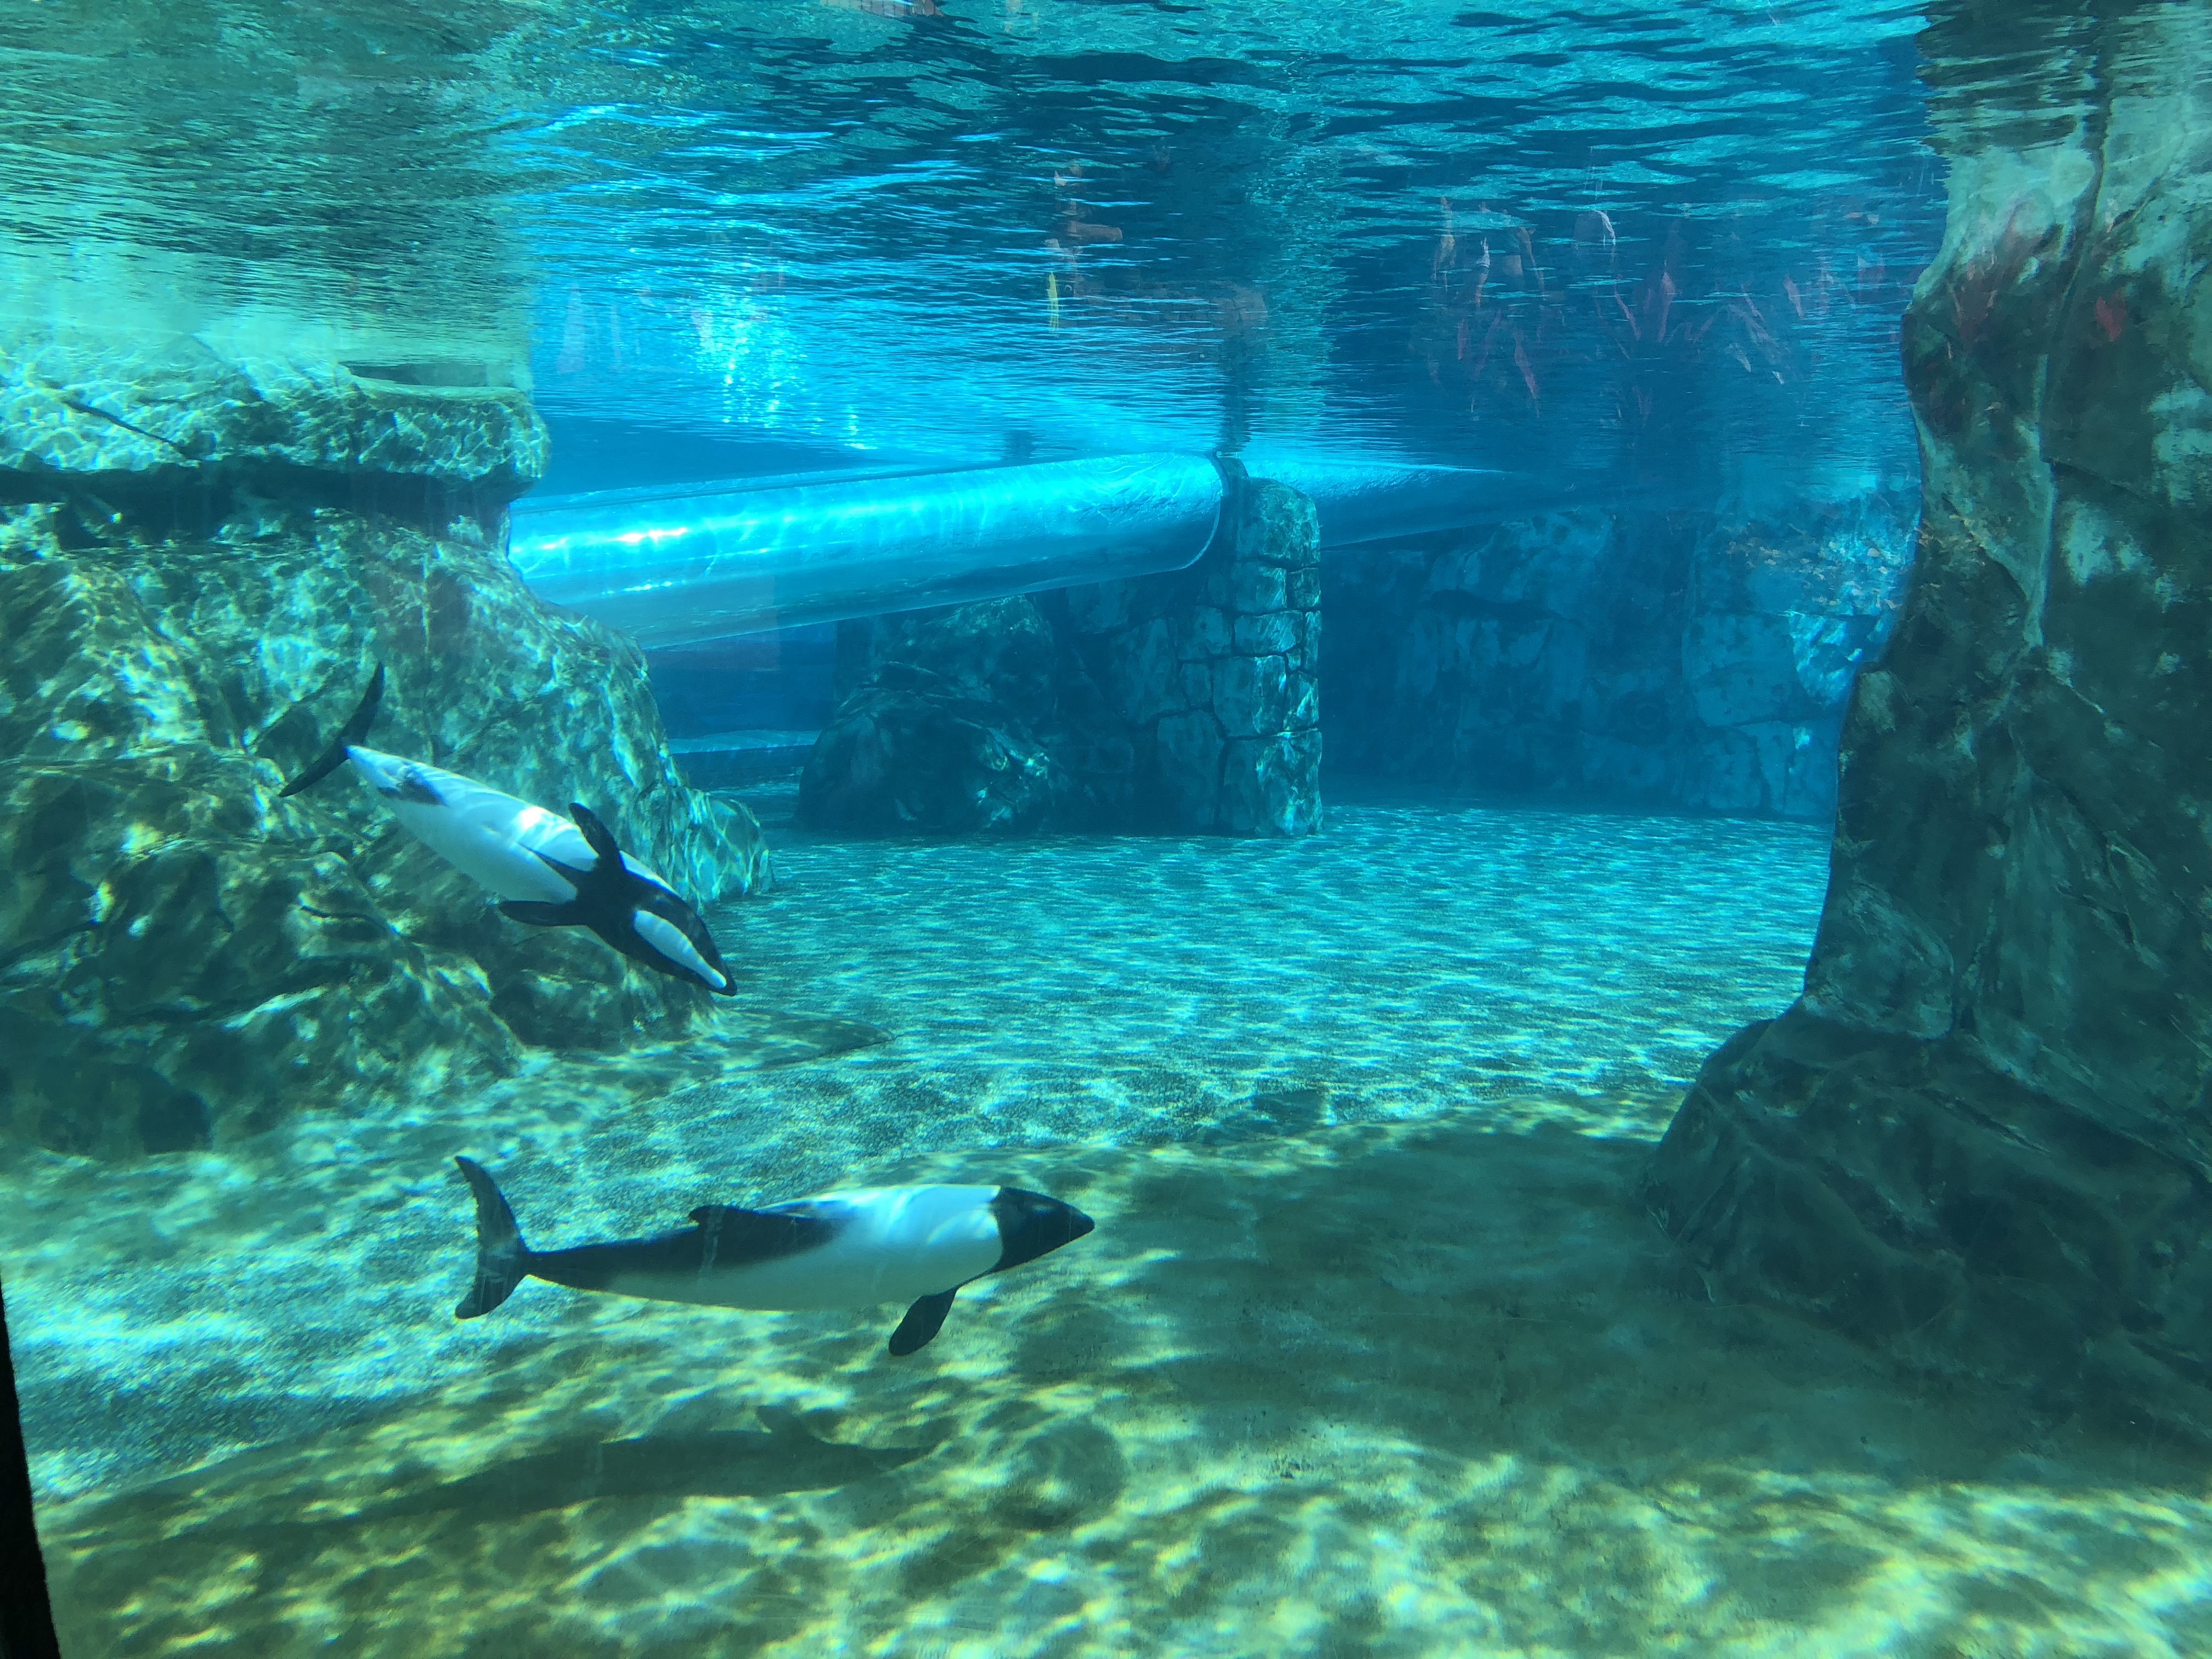 underwater water slide. Just To The Right Side Of Dolphin Viewing Area Is Where Penny Machine Was Located. Underwater Water Slide